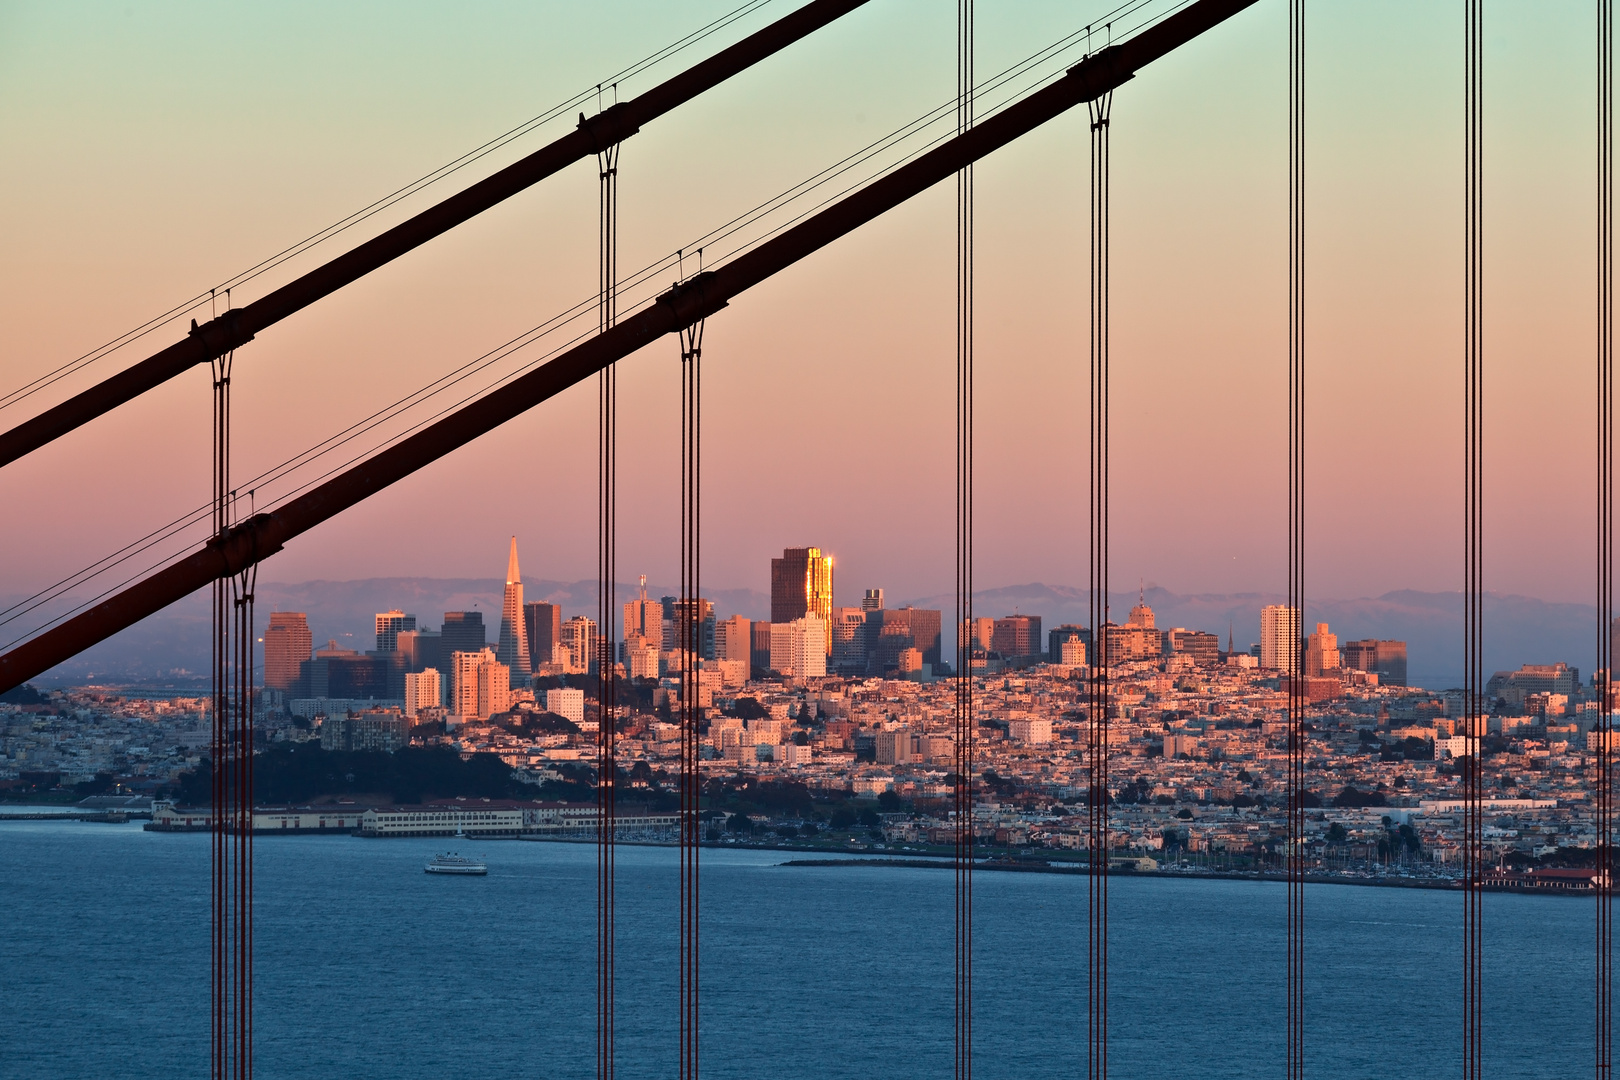 Golden Gate (mal anders)